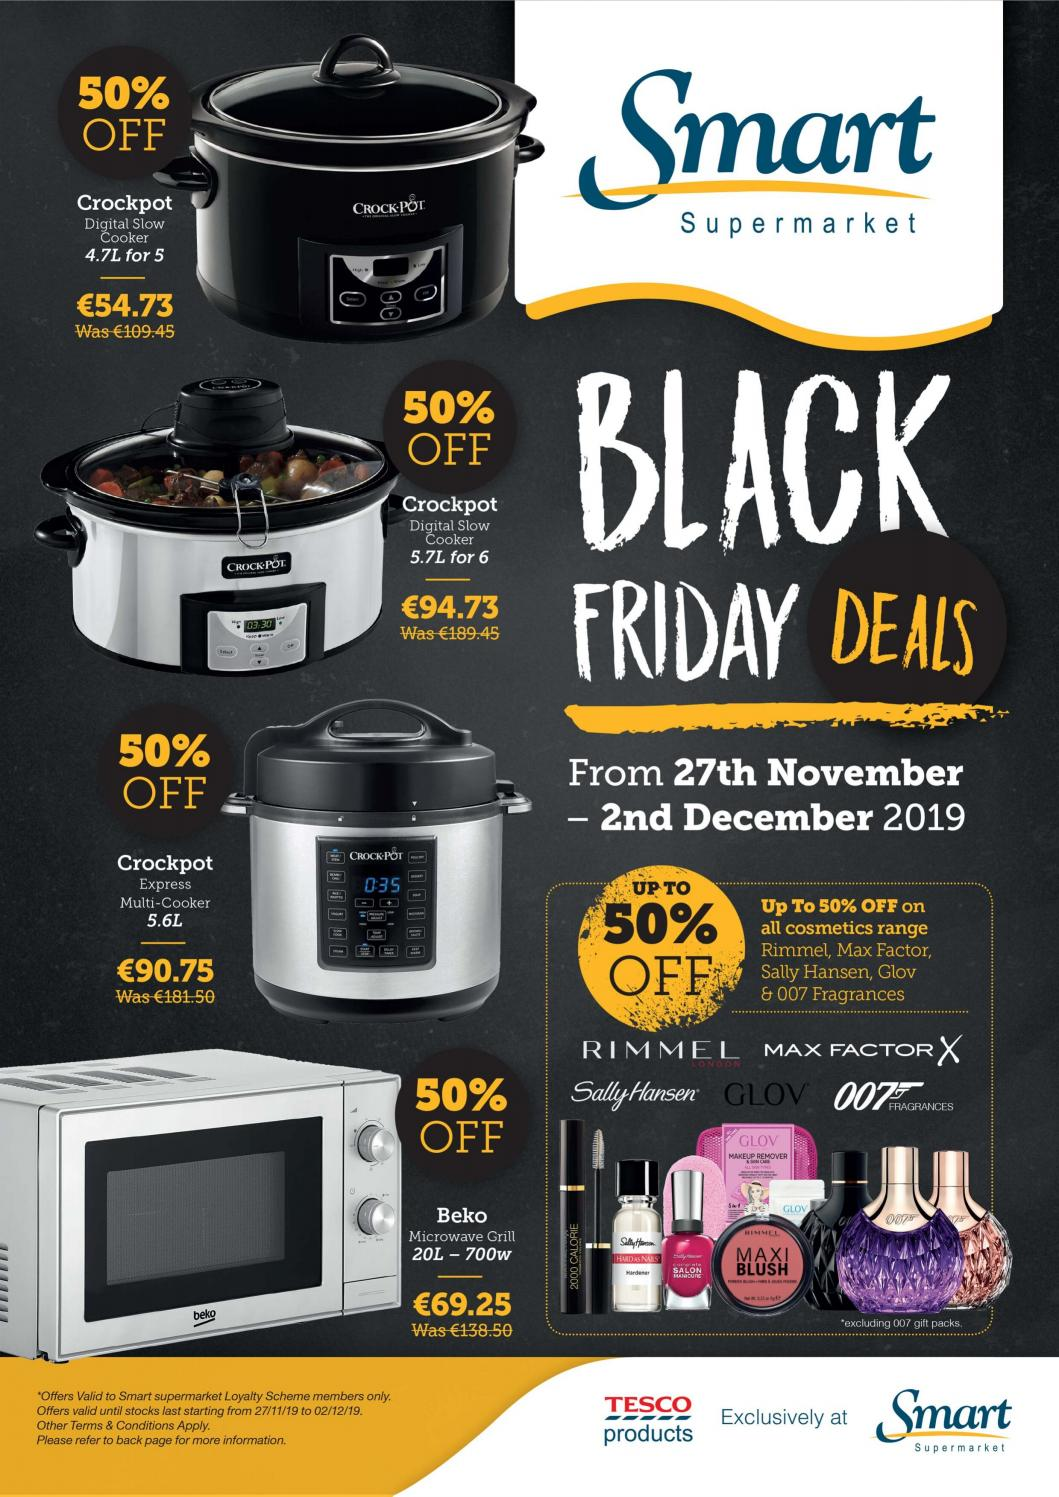 Black Friday Deals 2019 Smart